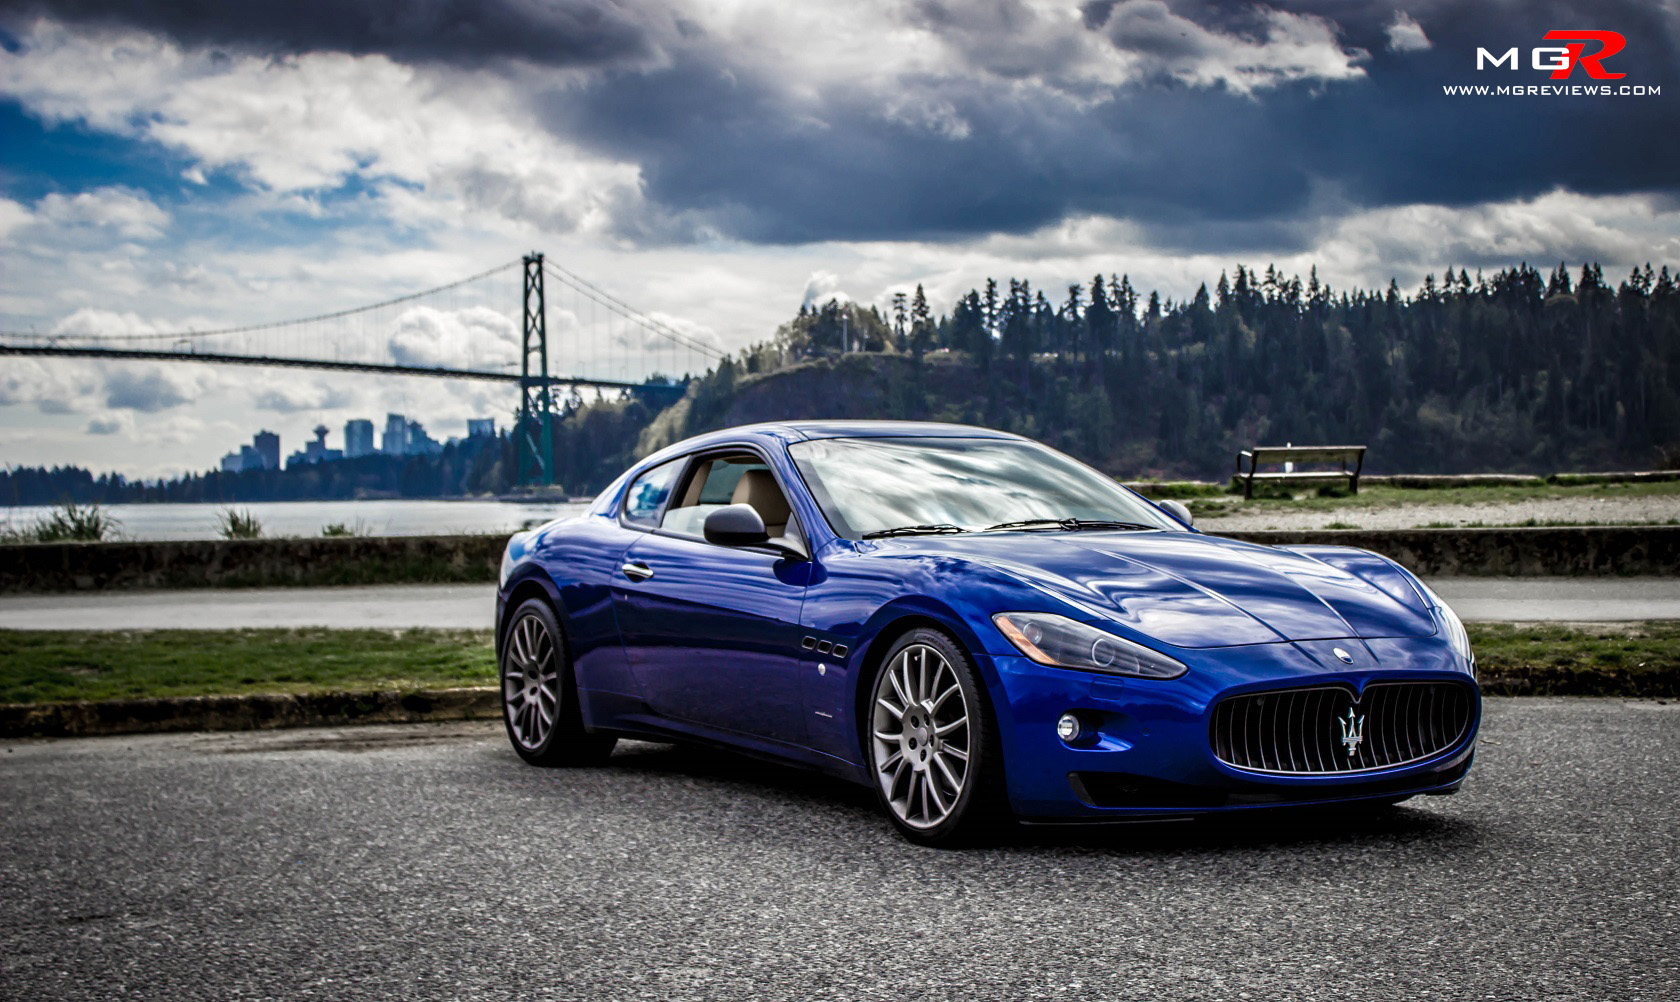 review 2009 maserati granturismo s m g reviews. Black Bedroom Furniture Sets. Home Design Ideas